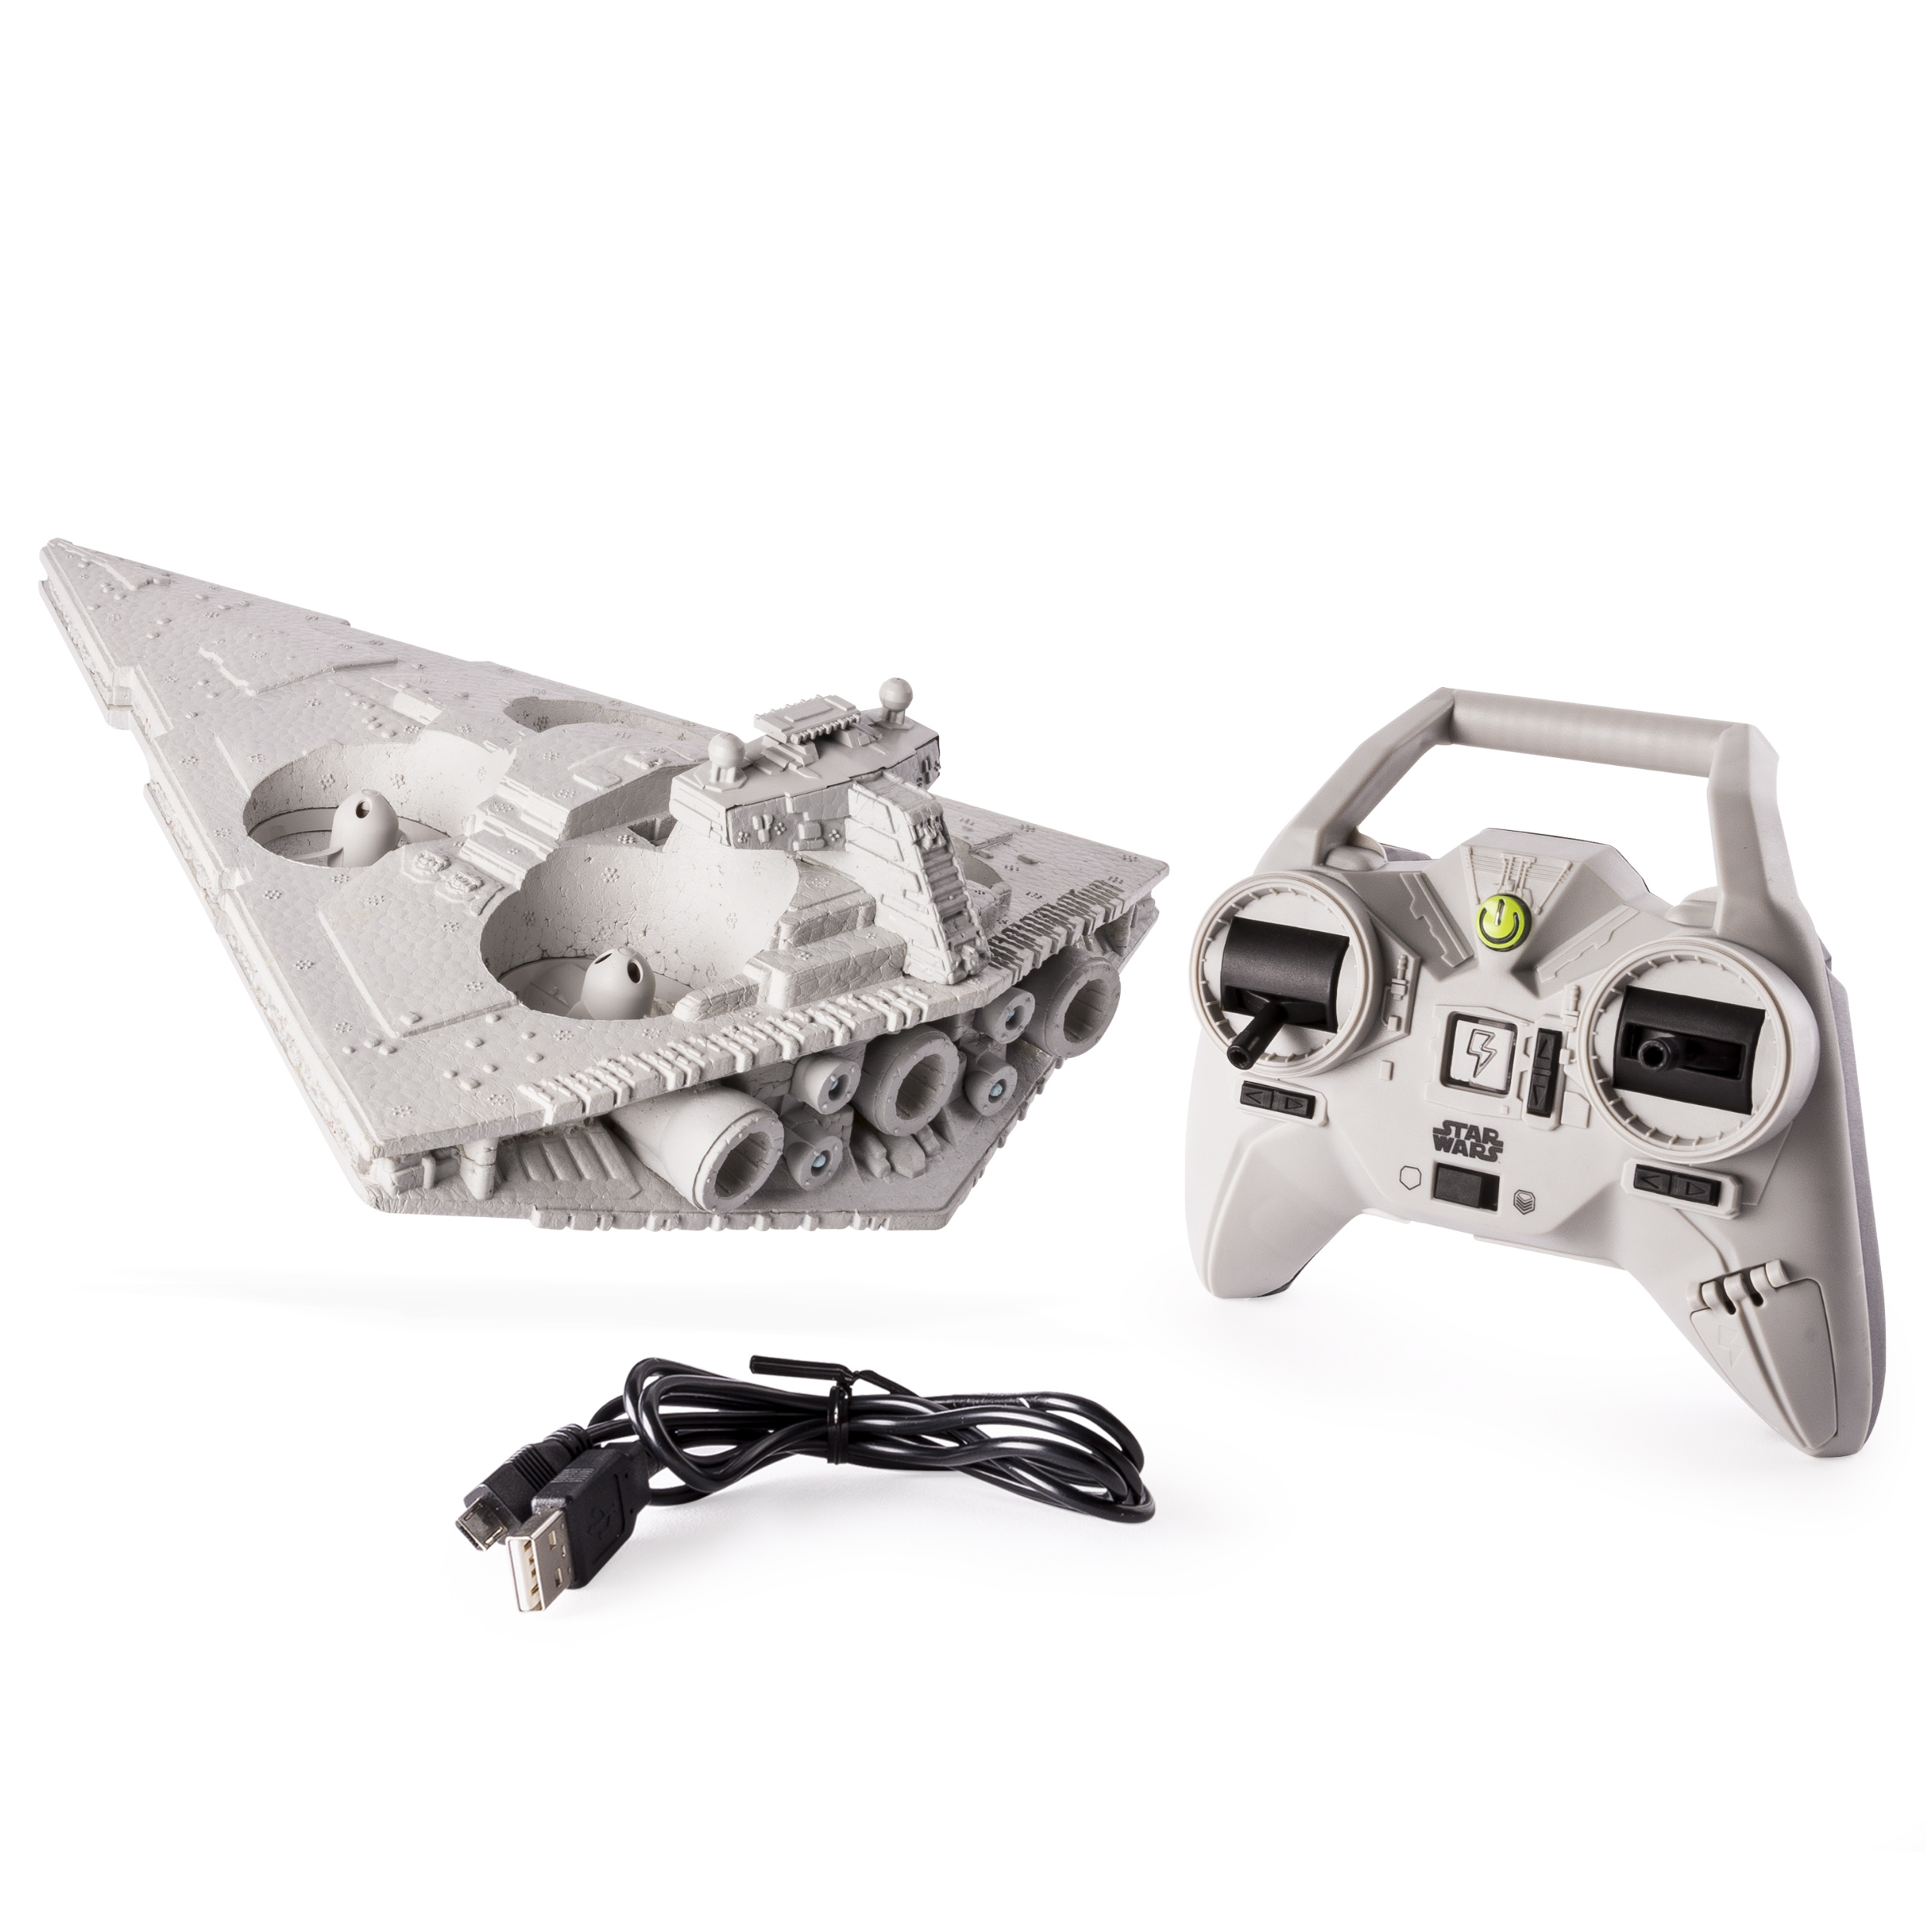 Air Hogs - Star Wars Remote Control Star Destroyer Drone